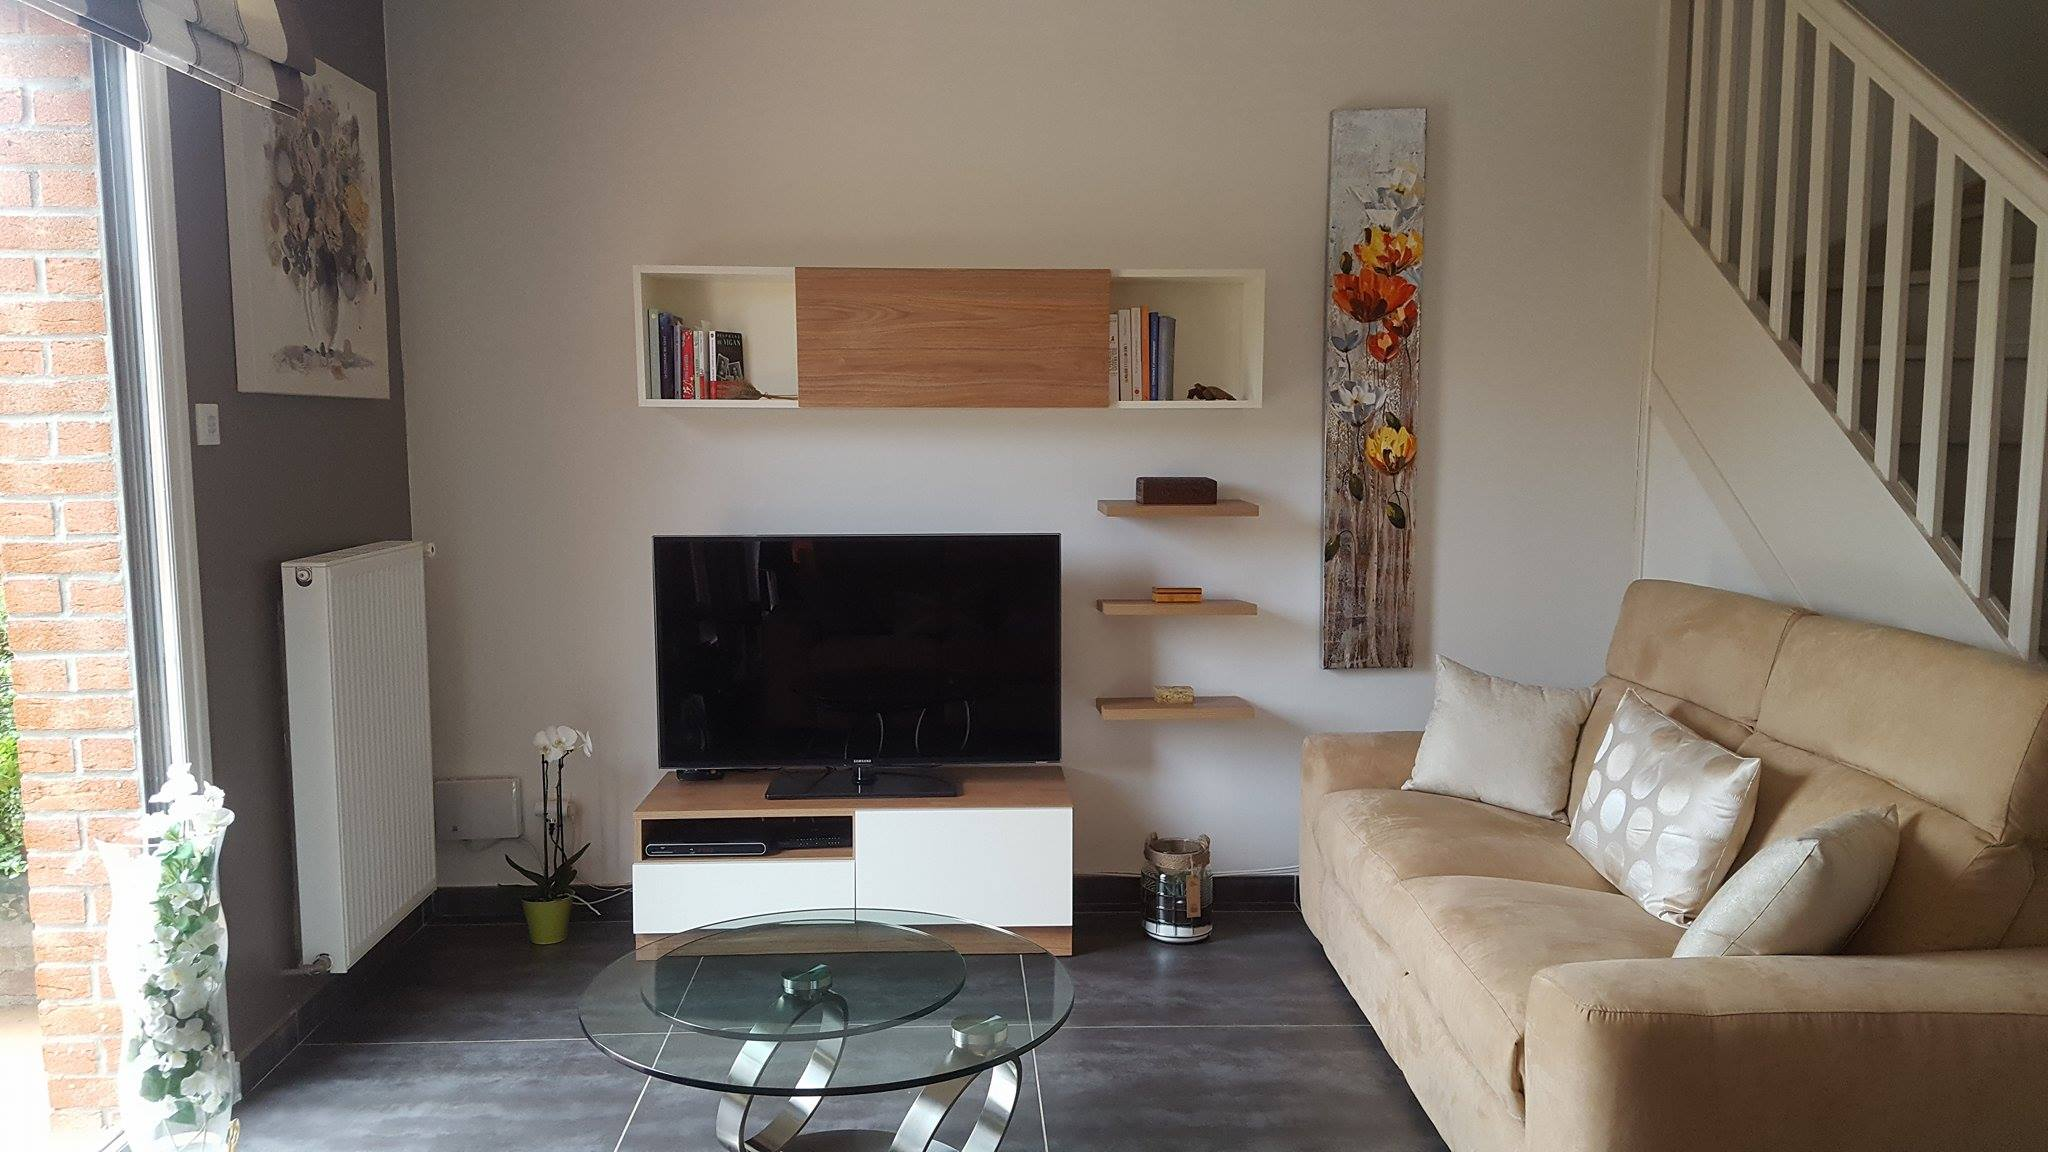 Meuble De T L Cosy R Alis Wambrechies Avec Composition Murale # Amenagement Tele Meuble Suspendu